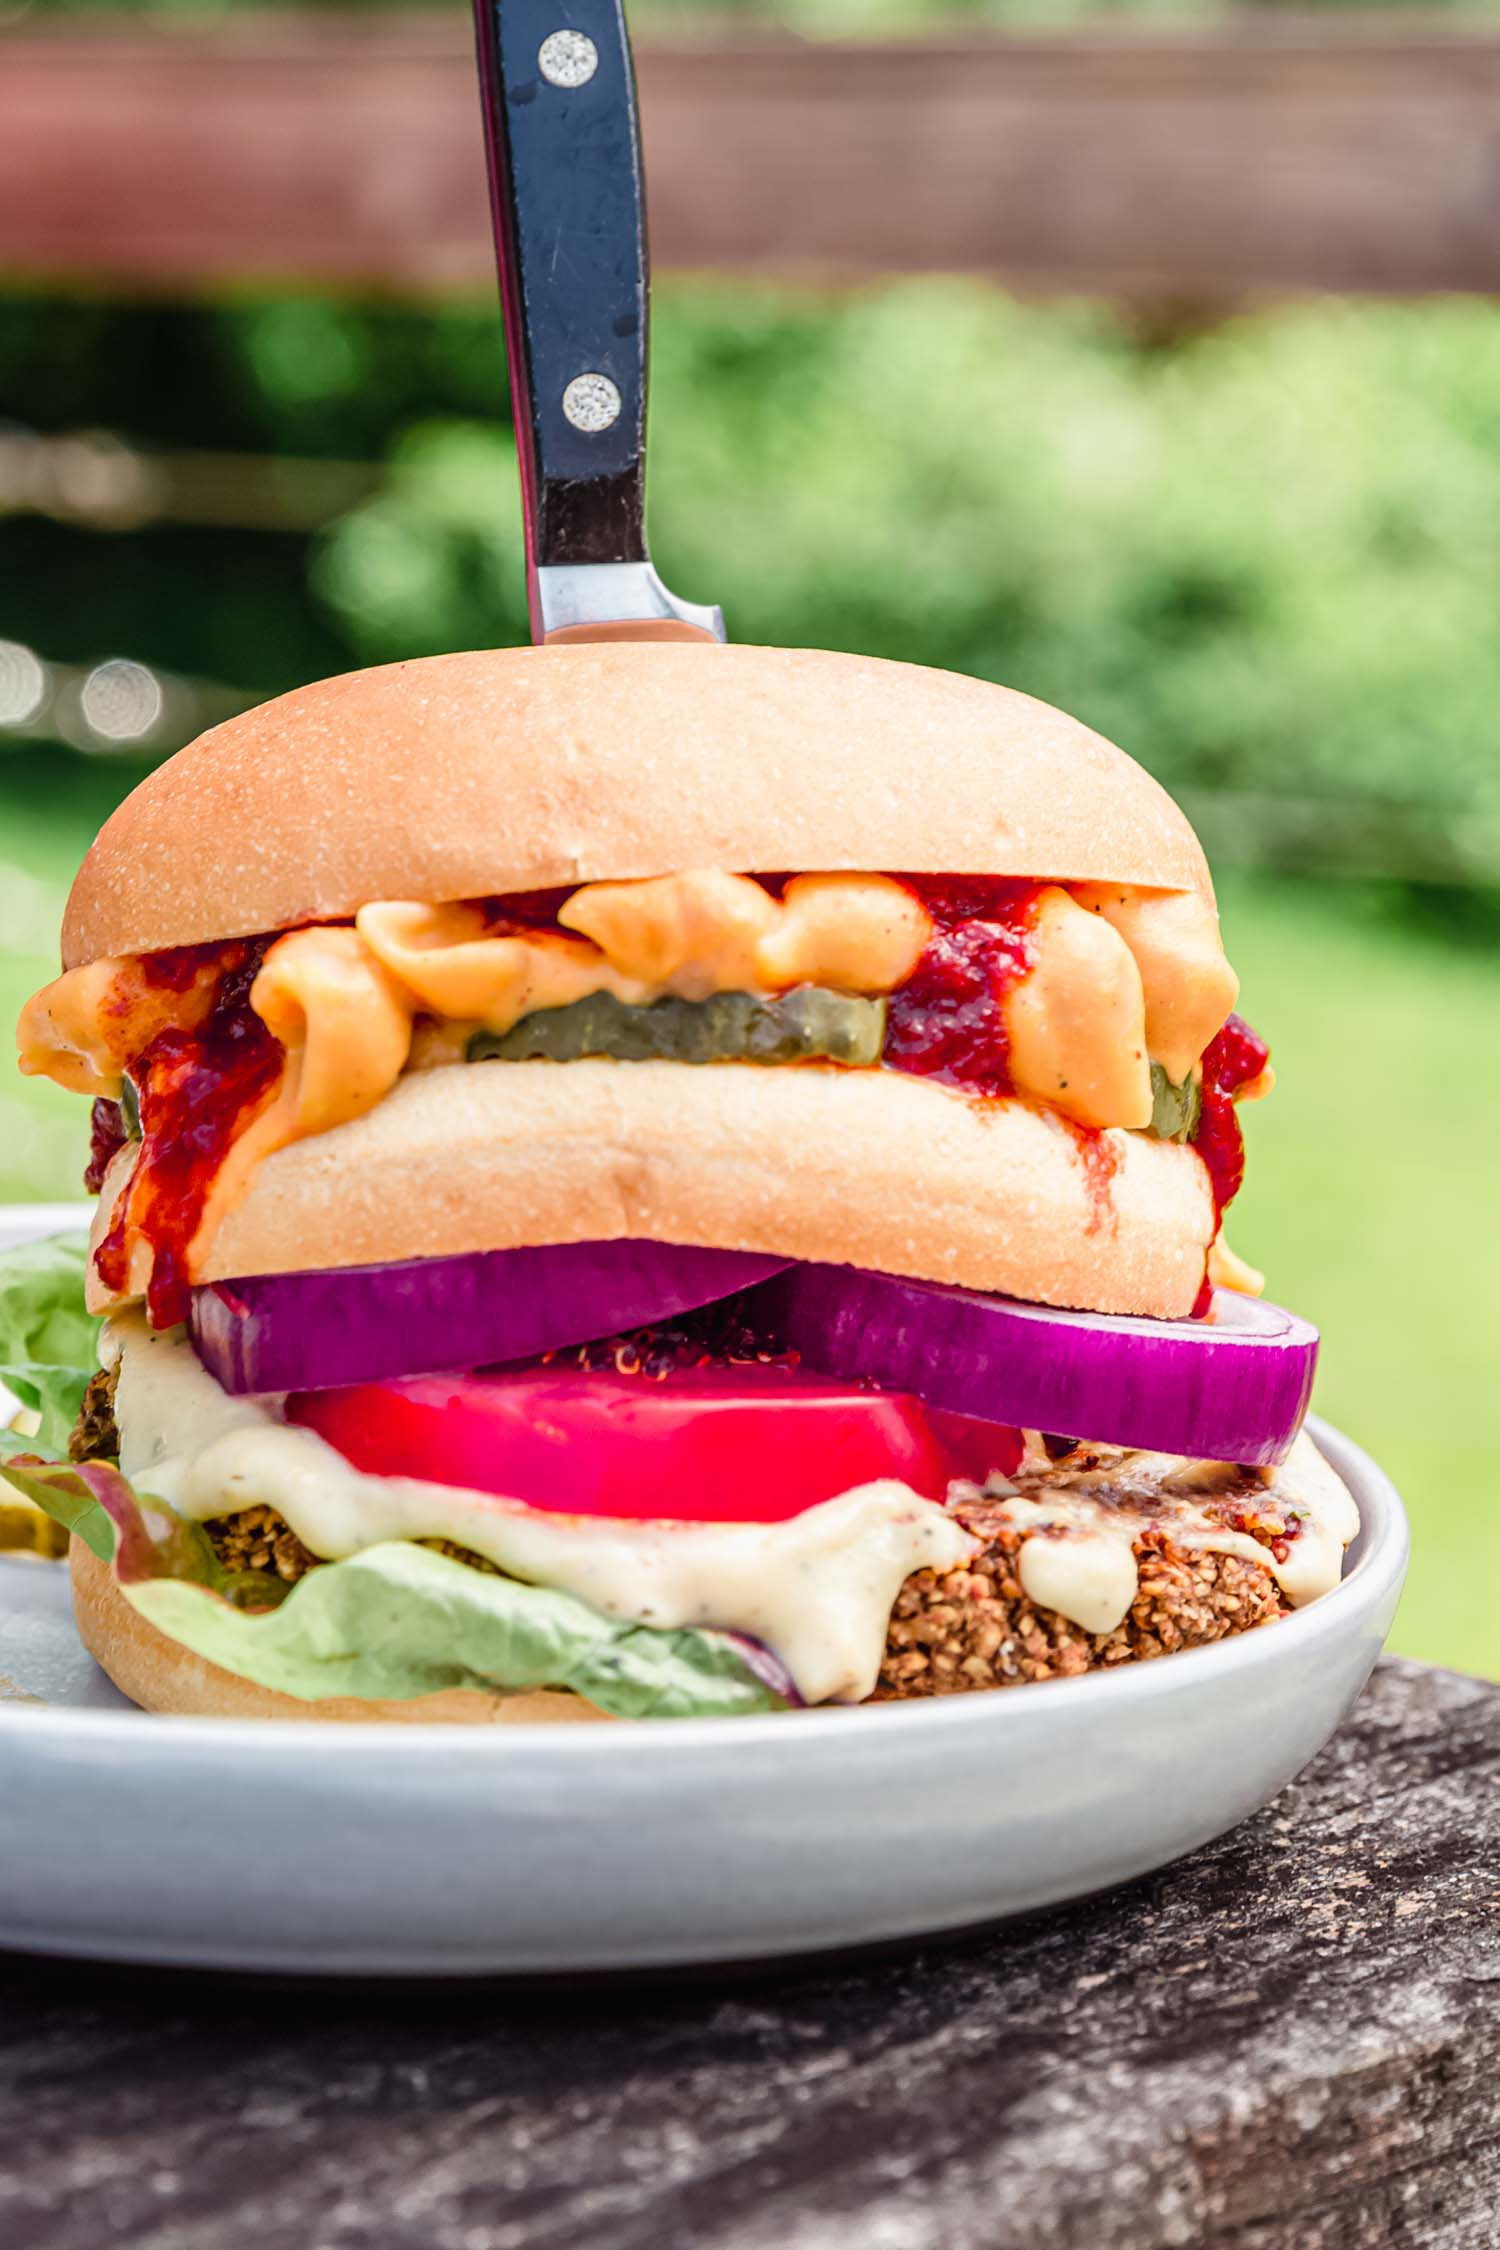 All-American Burger from Epic Vegan by Dustin Harder. Image by Kari at Beautiful Ingredient. #veganburger #fourthofjulyrecipe #veganrecipes #recipe #epicvegan #summerrecipe #veggieburgerrecipe #veggieburger